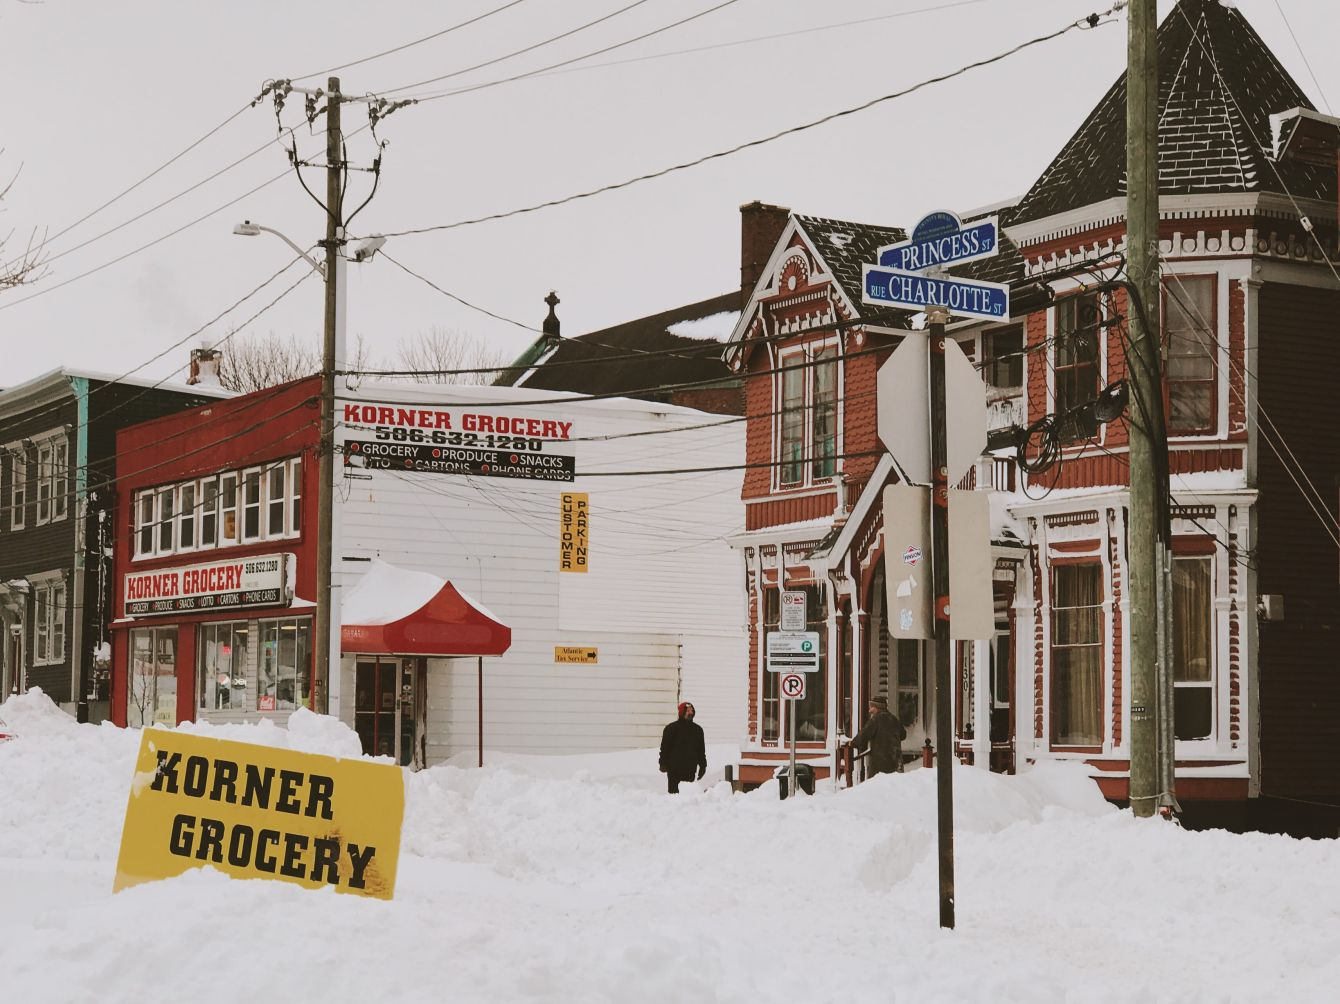 Click thumbnail to see details about photo - Korner Grocery Intersection Snow Photograph